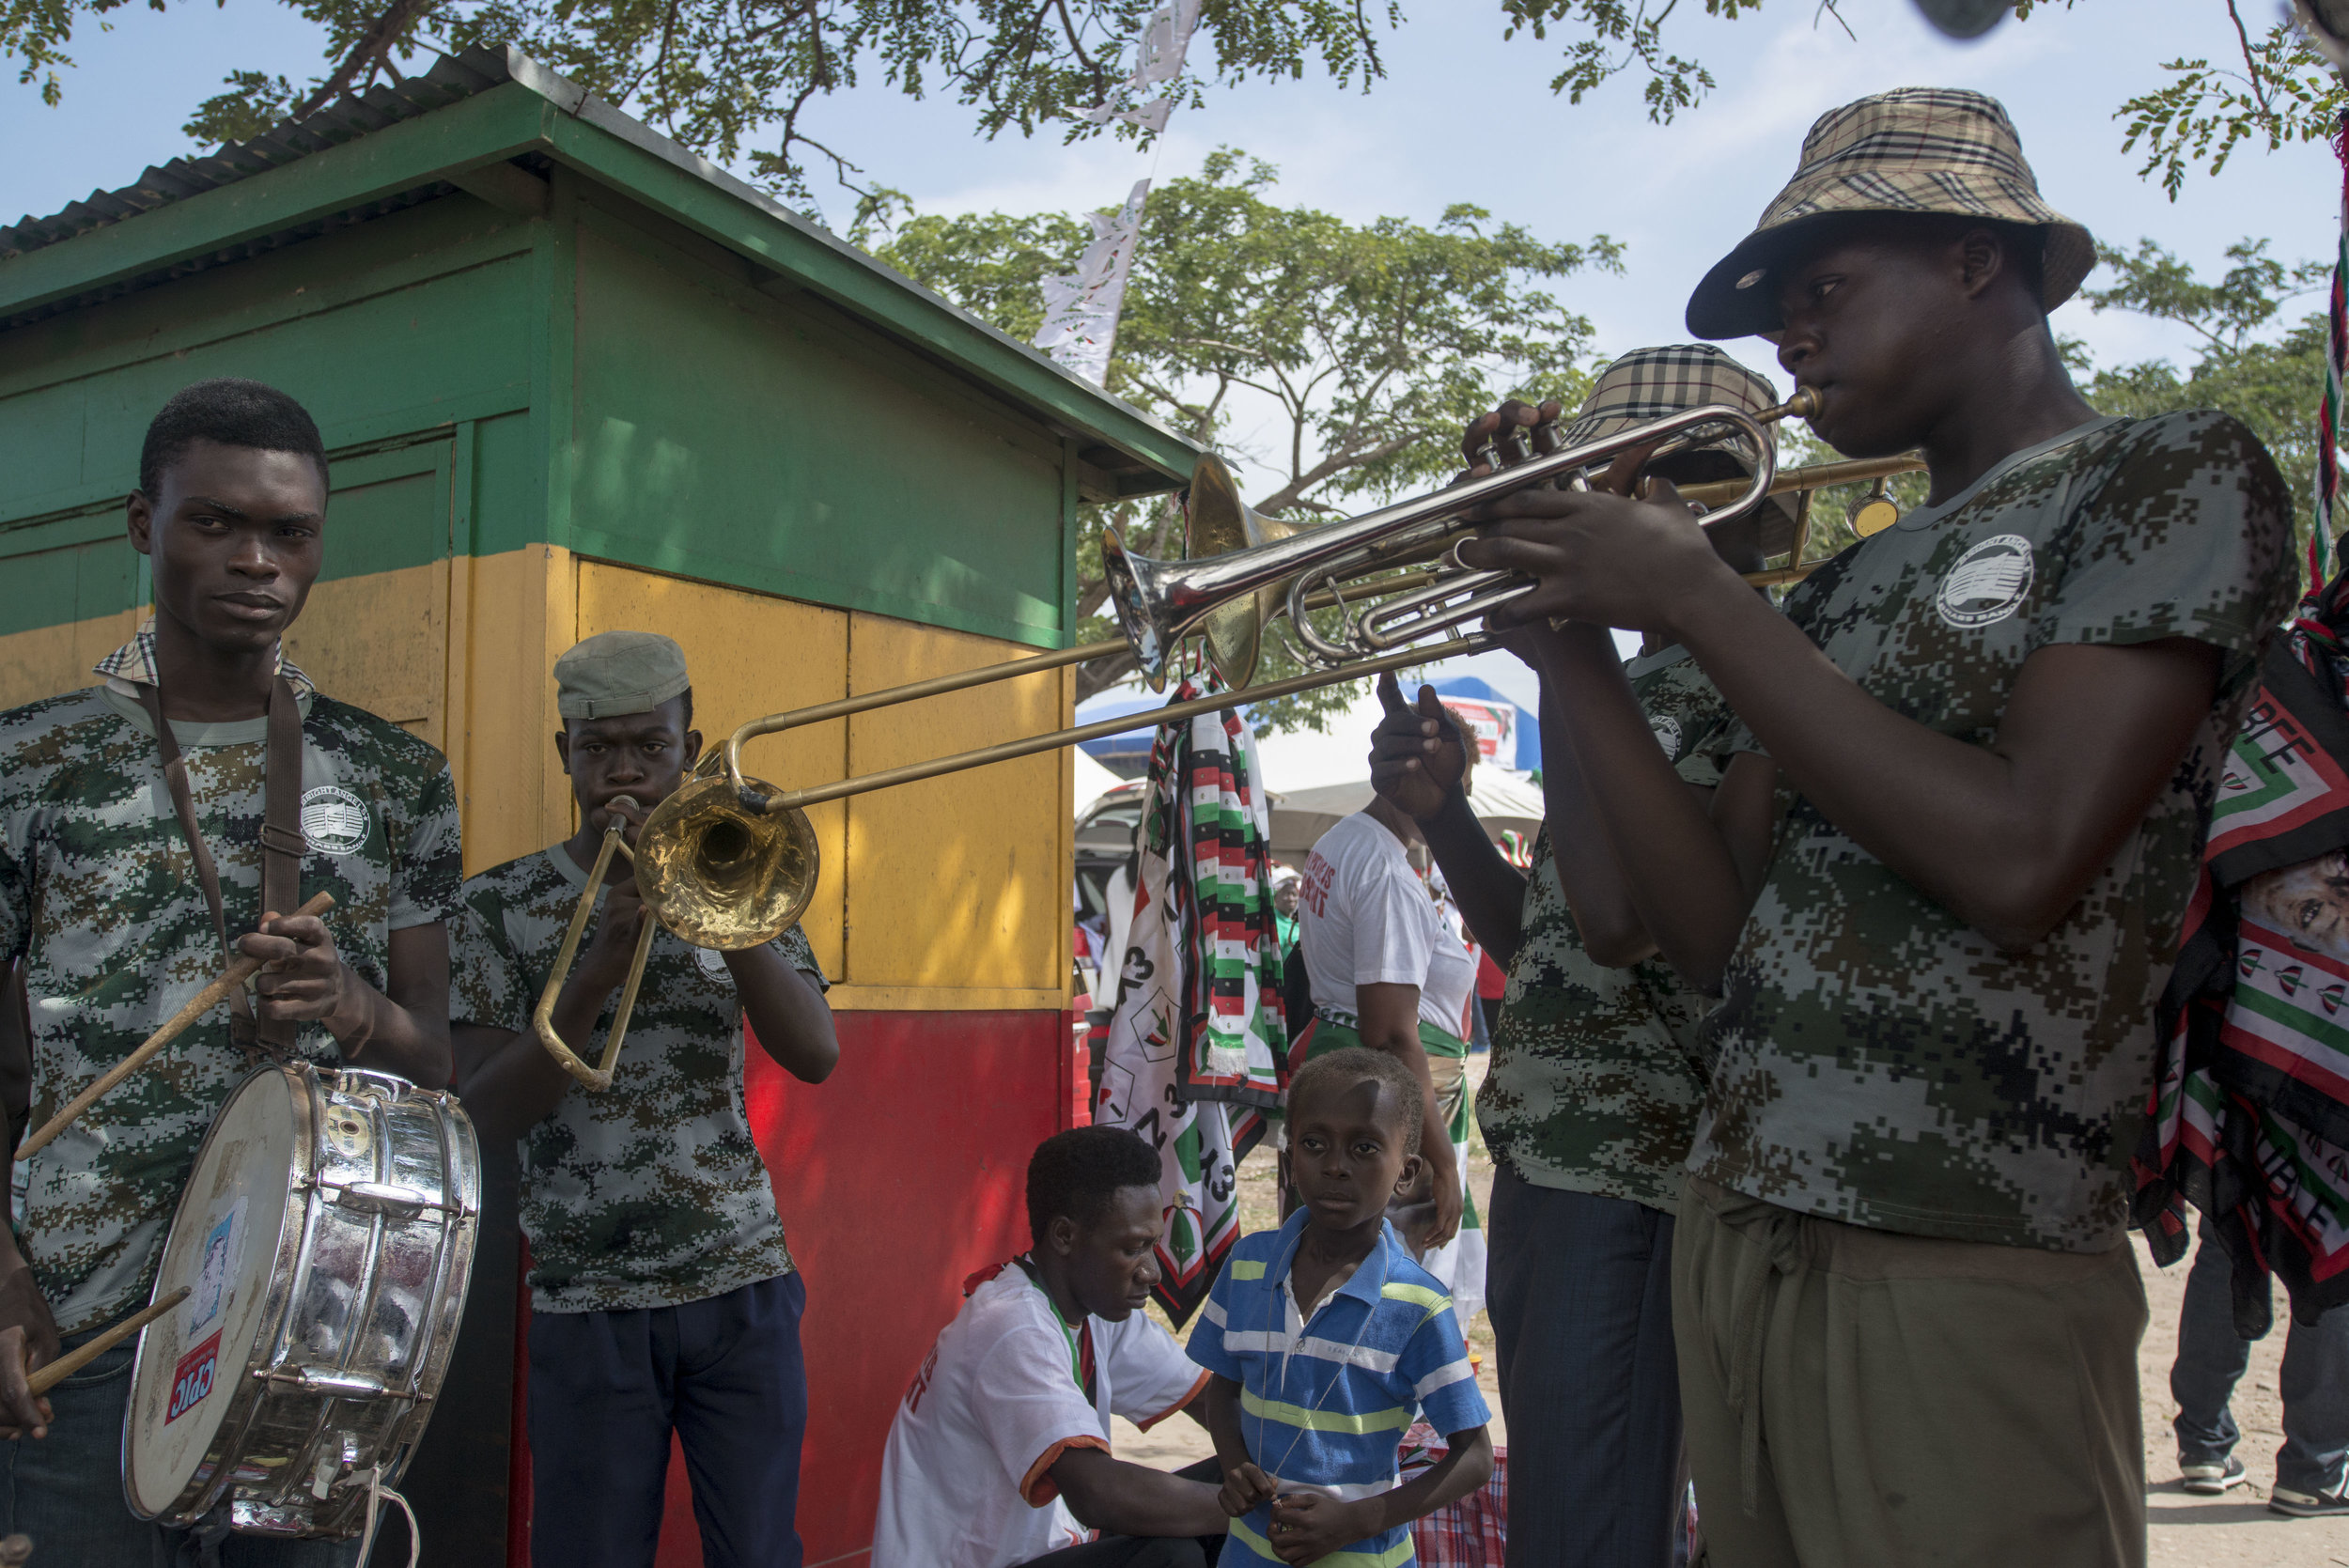 Musician practicing before a rally in support of NDC and John Dramani Mahama starts in Tema town, Accra